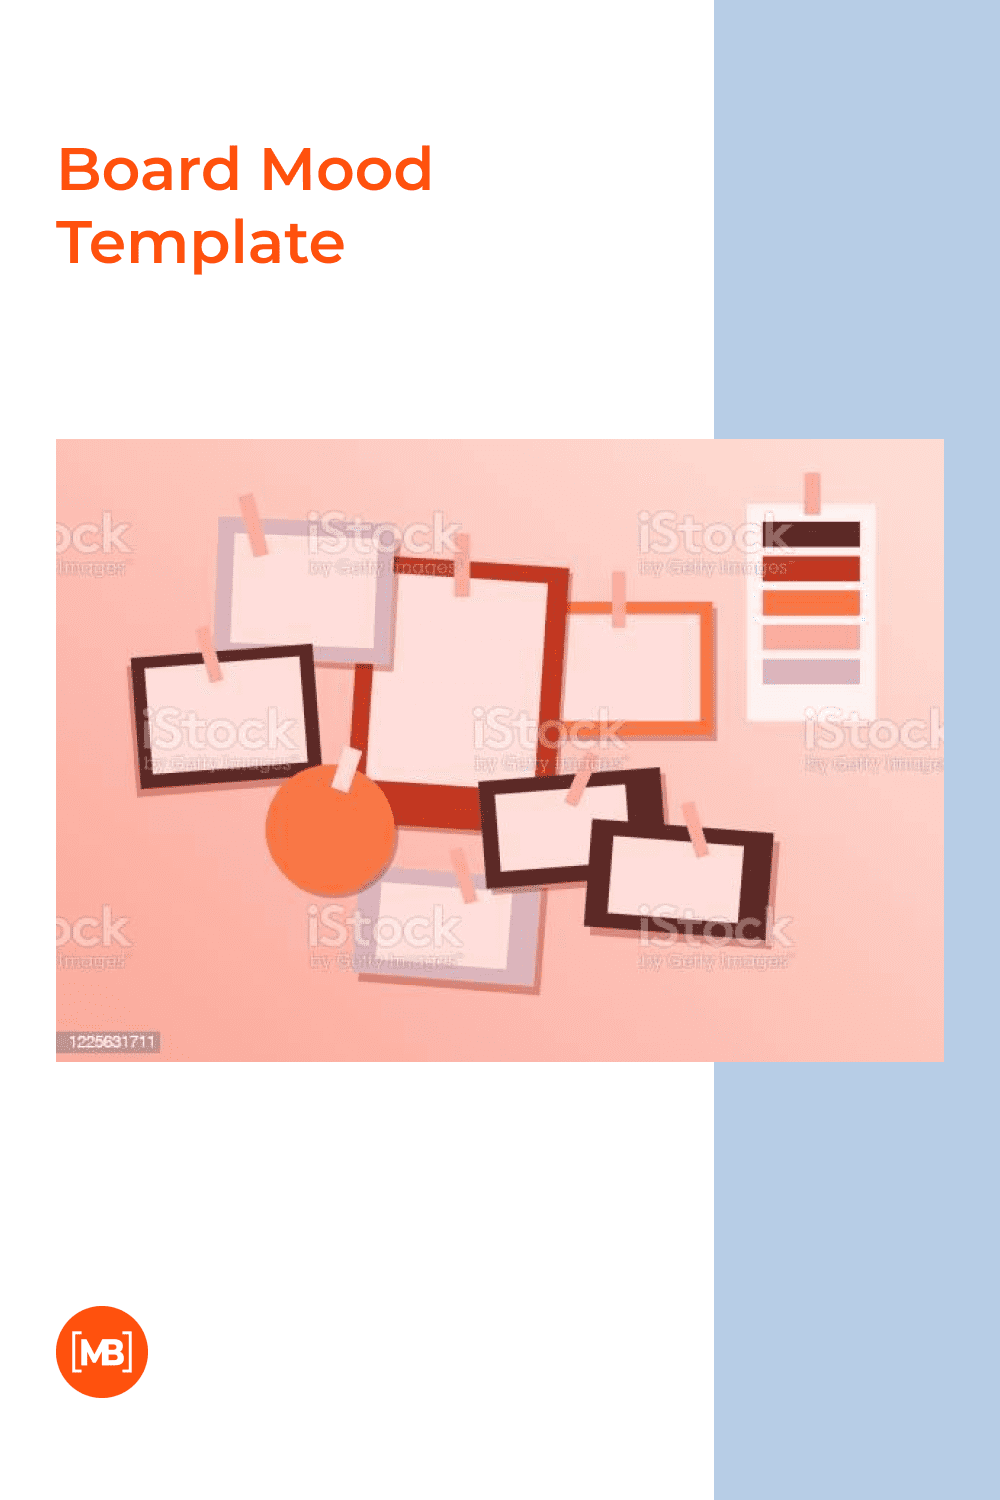 Modern brand mood concept design template empty for messages minimalistic color.